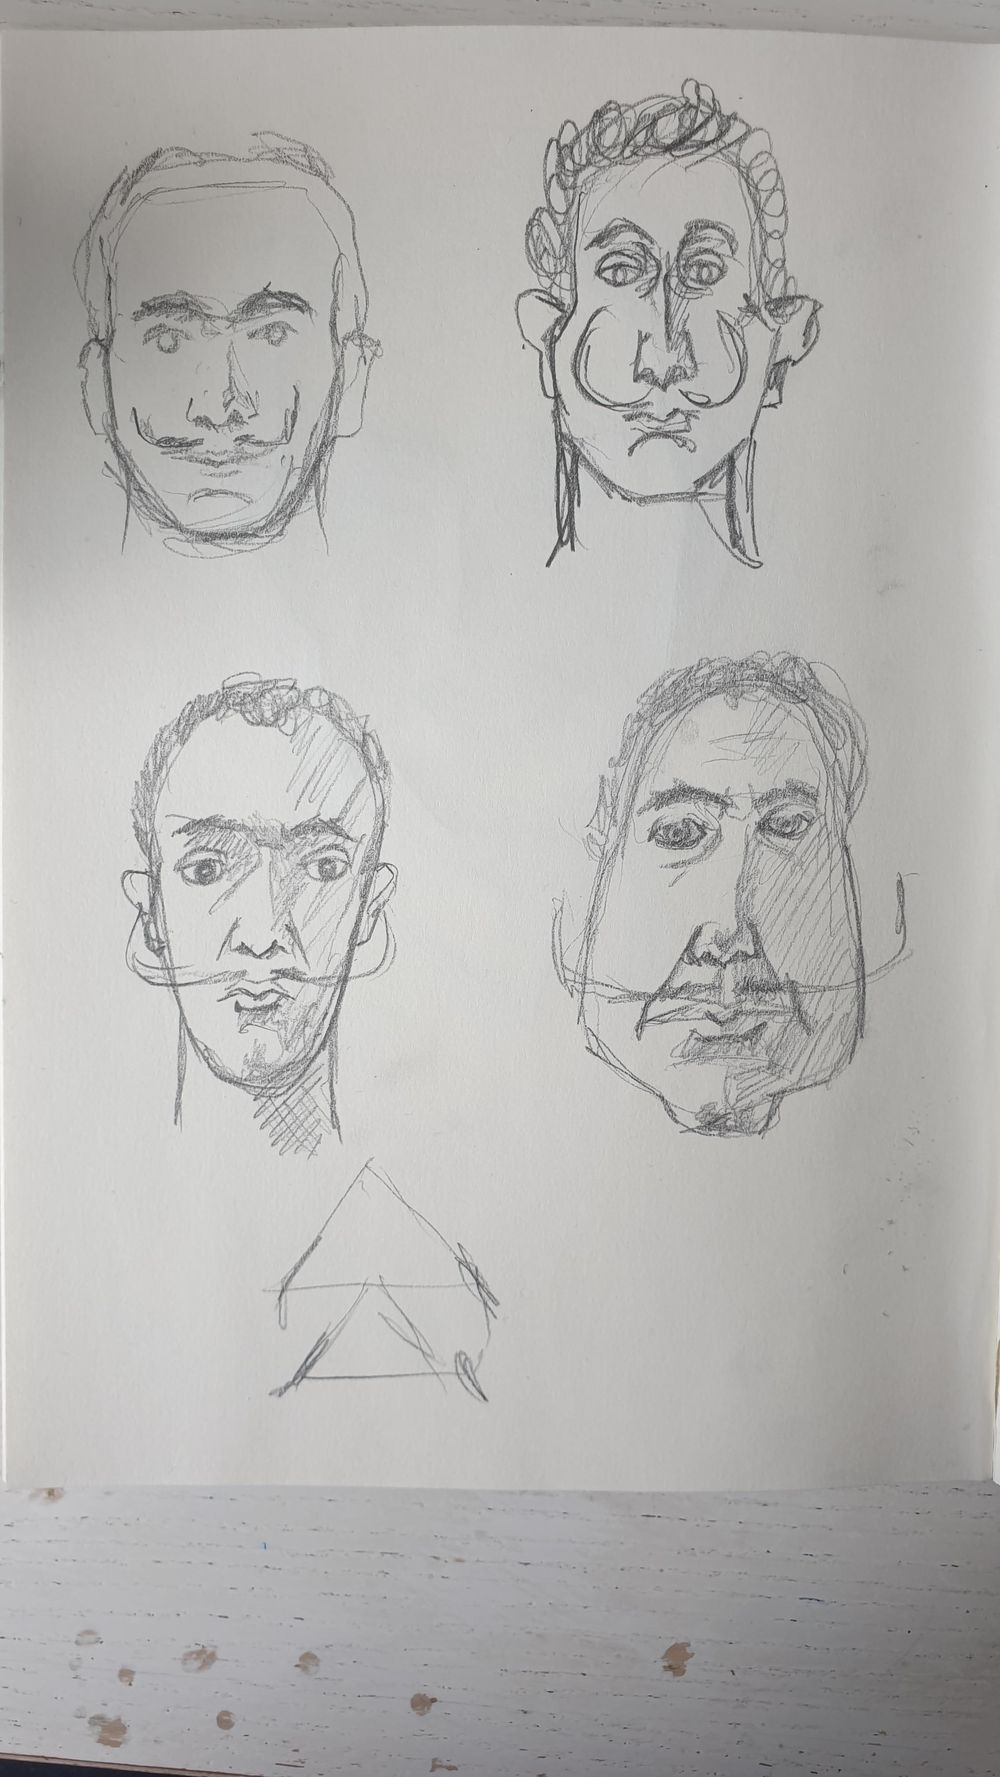 Dali caricature exercise - image 1 - student project